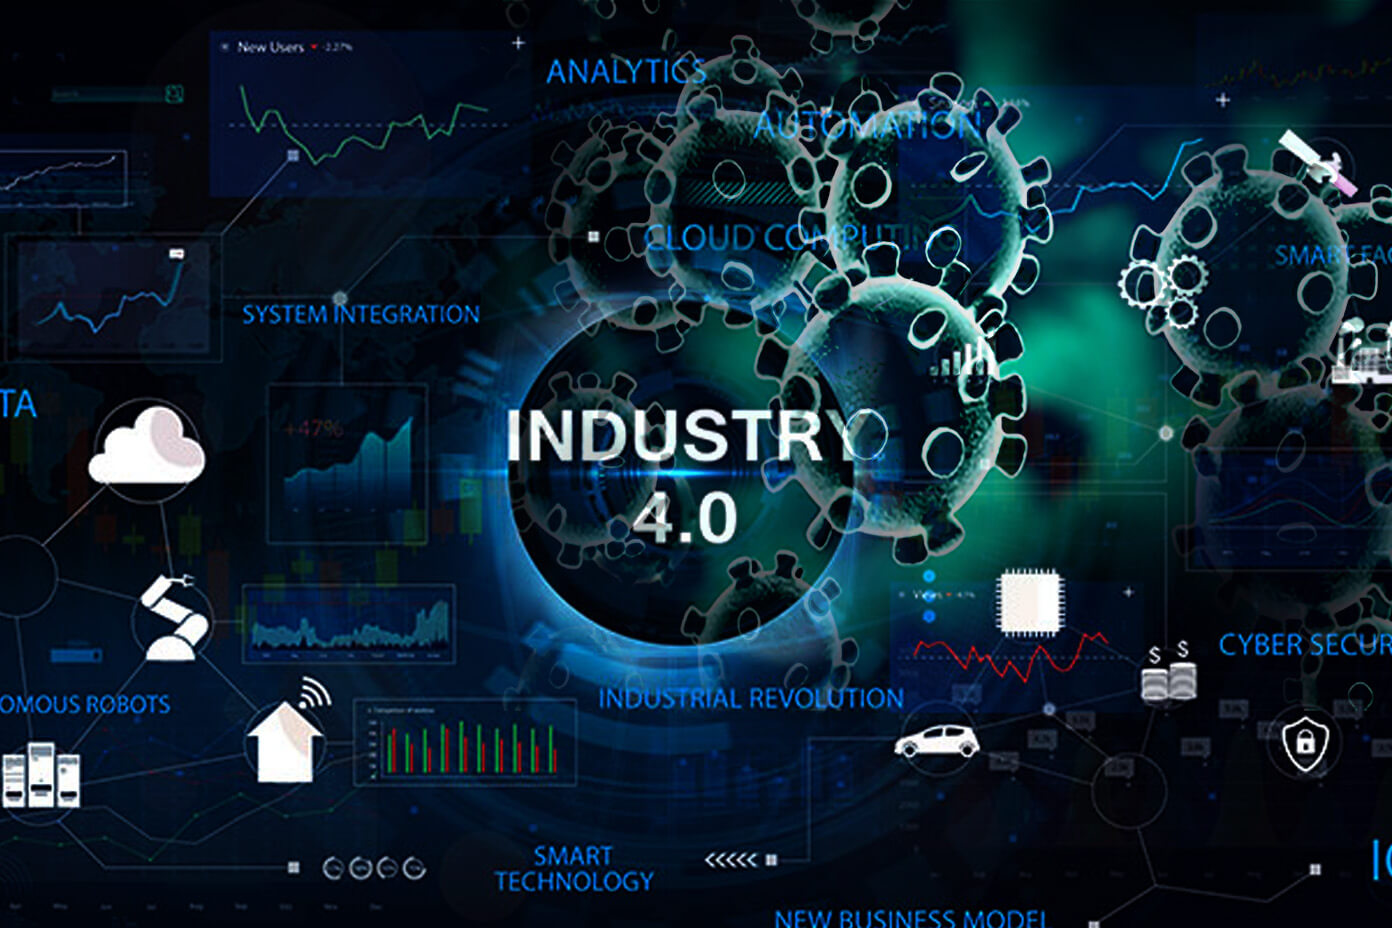 How Industry 4.0 Technologies helped Businesses Stay Afloat during the COVID-19 Crisis